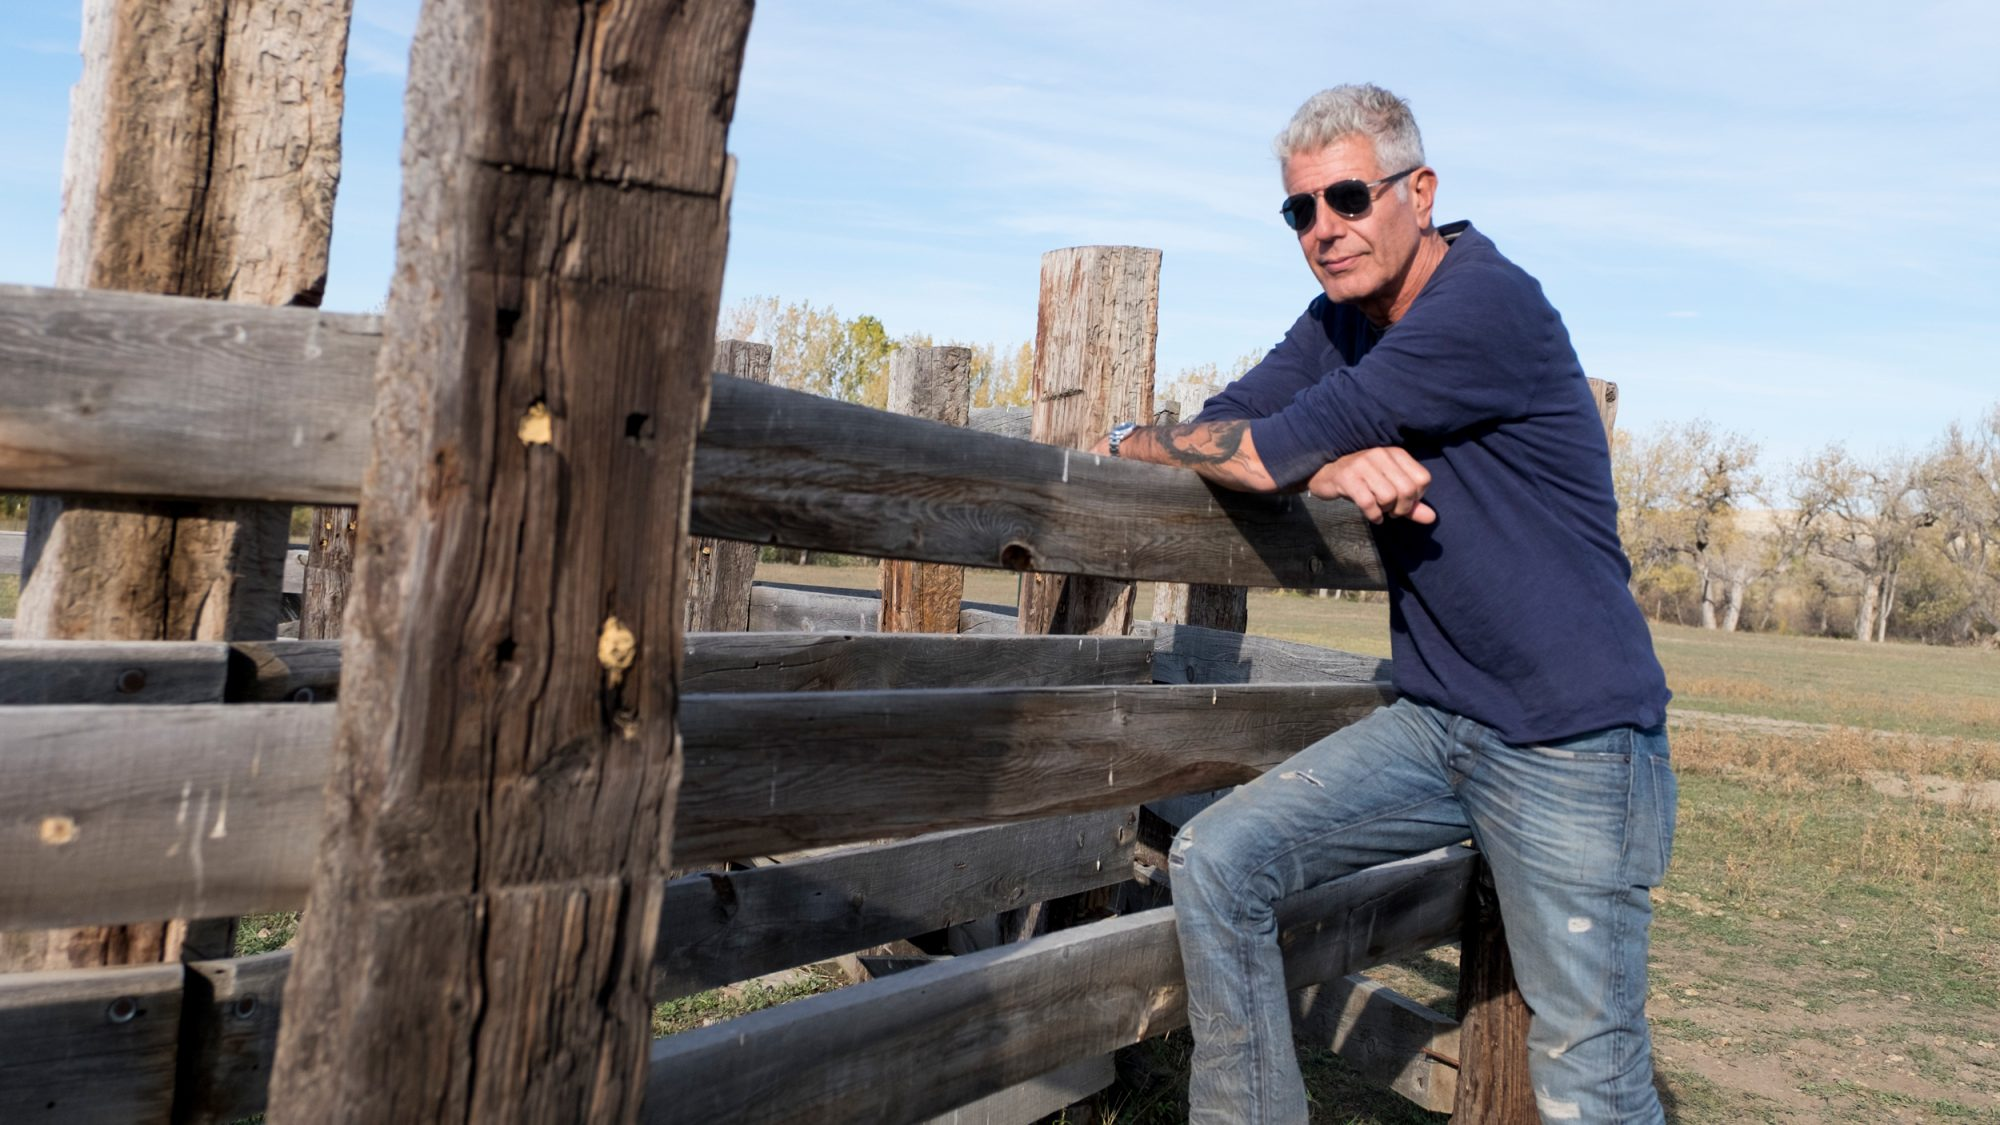 Anthony Bourdain Wins 4th Emmy for Parts Unknown